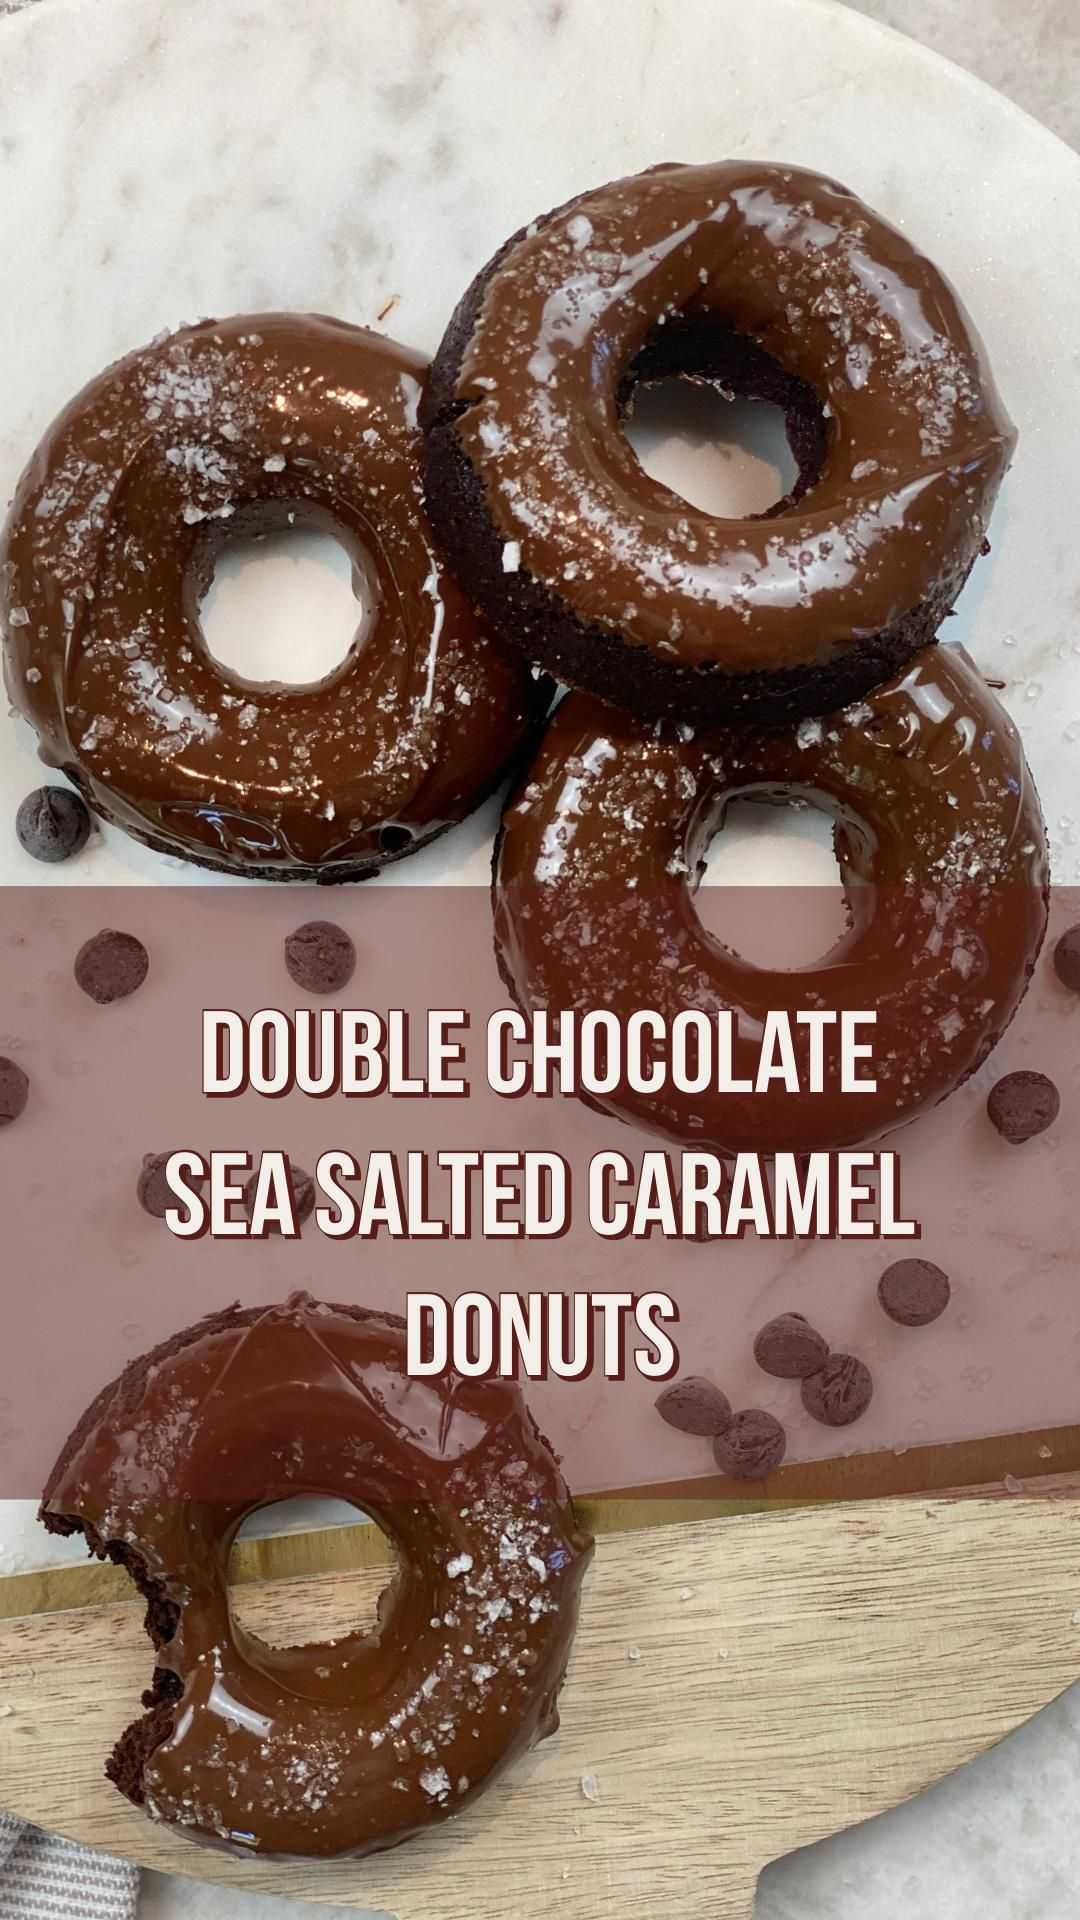 DONUT miss out on these #homemade junk-free better-for-you #organic and lower sugar #donuts using our #Foodstirs Organic Double Chocolate Sea Salted Brownie Mix! Bake Time: 0 hours 30 minutes Bake at 350F degrees for 20 minutes Ingredients: Foodstirs Organic Double Chocolate Sea Salted Brownie Mix 2 eggs 2 tbsp. of hot water 1/3 cup of vegetable oil Sea salt packet (comes in the box)